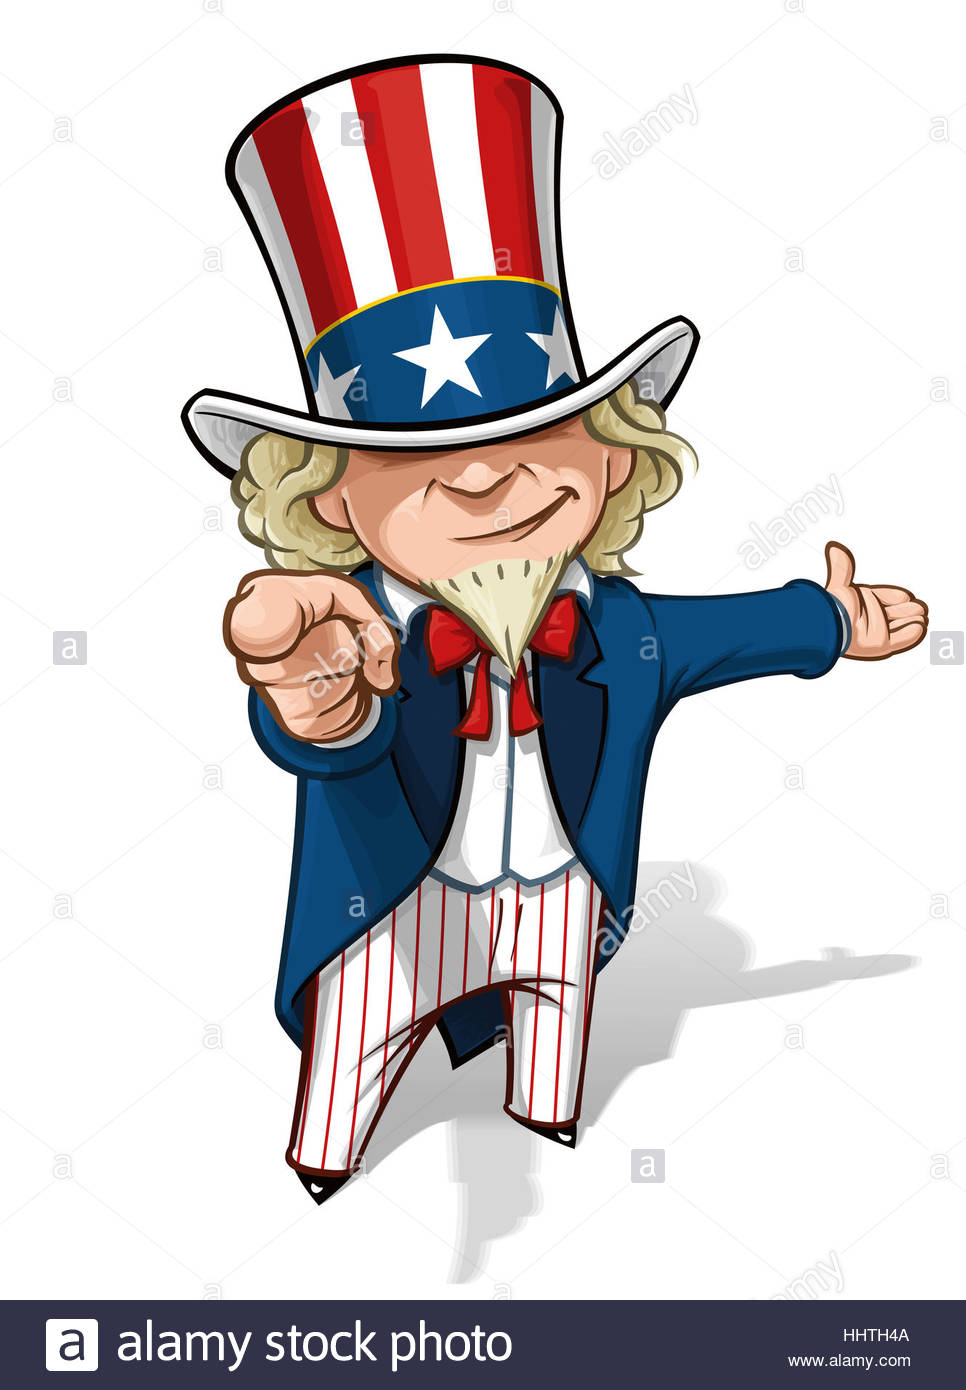 966x1390 Cartoon Patriot Stock Photos Amp Cartoon Patriot Stock Images